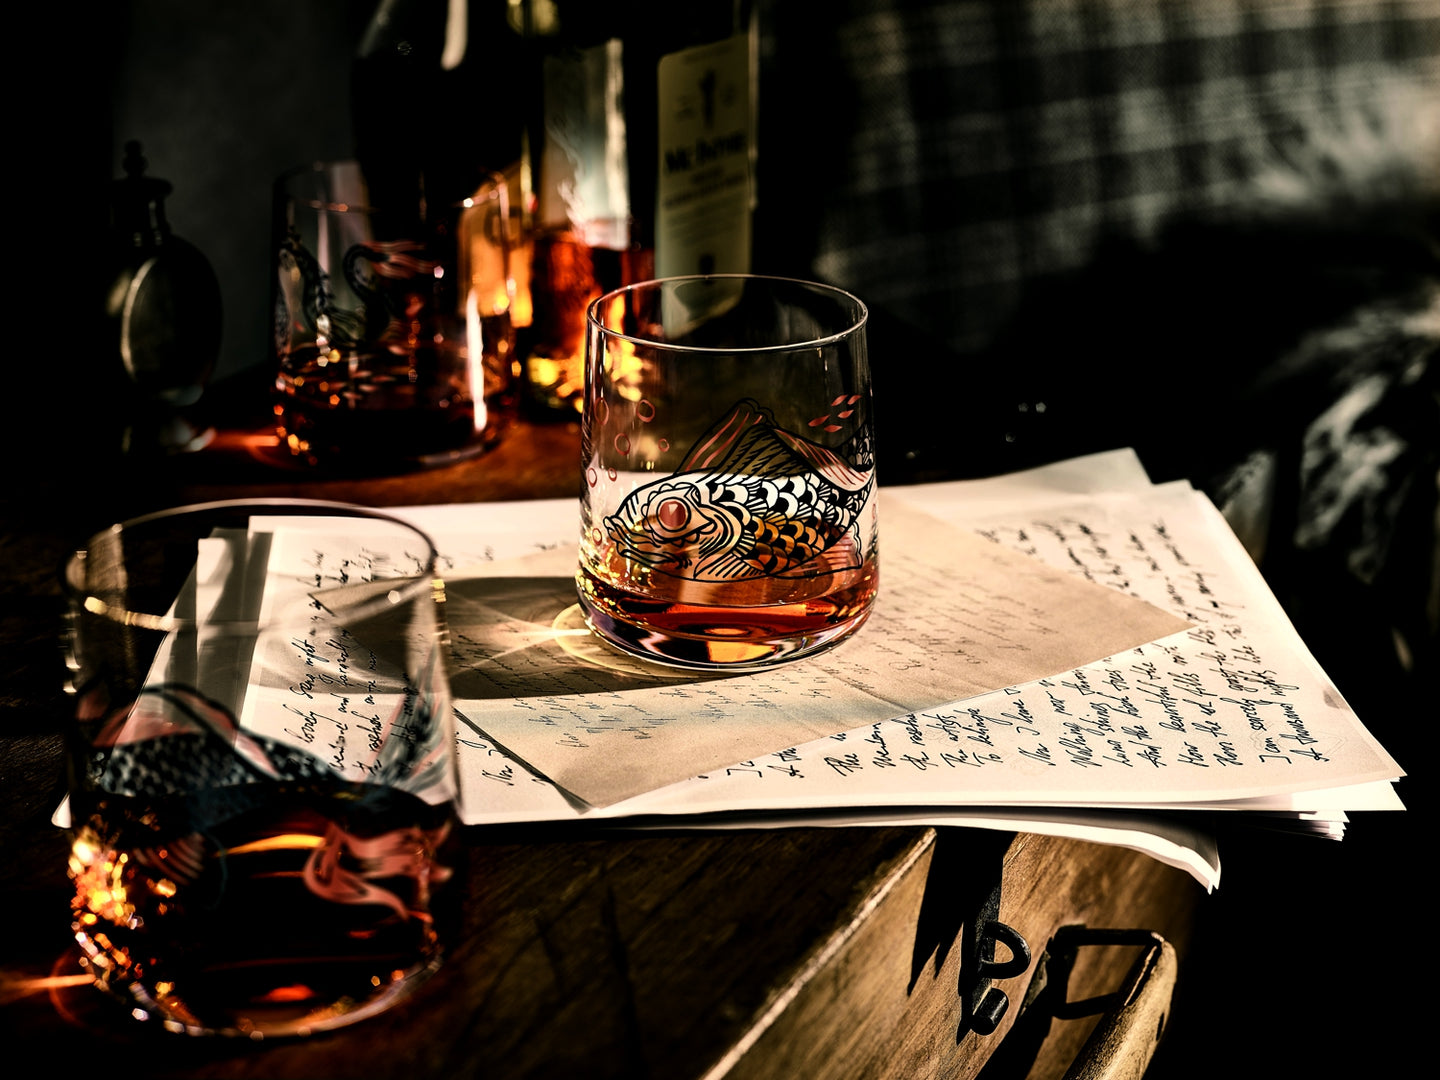 RITZENHOFF Glassware, made in Germany by the leading Glassware Manufacturer.   Pictured are two Whisky tumblers, made by RITZENHOFF. Pictured on some reading notes with Whisky ready to drink inside!